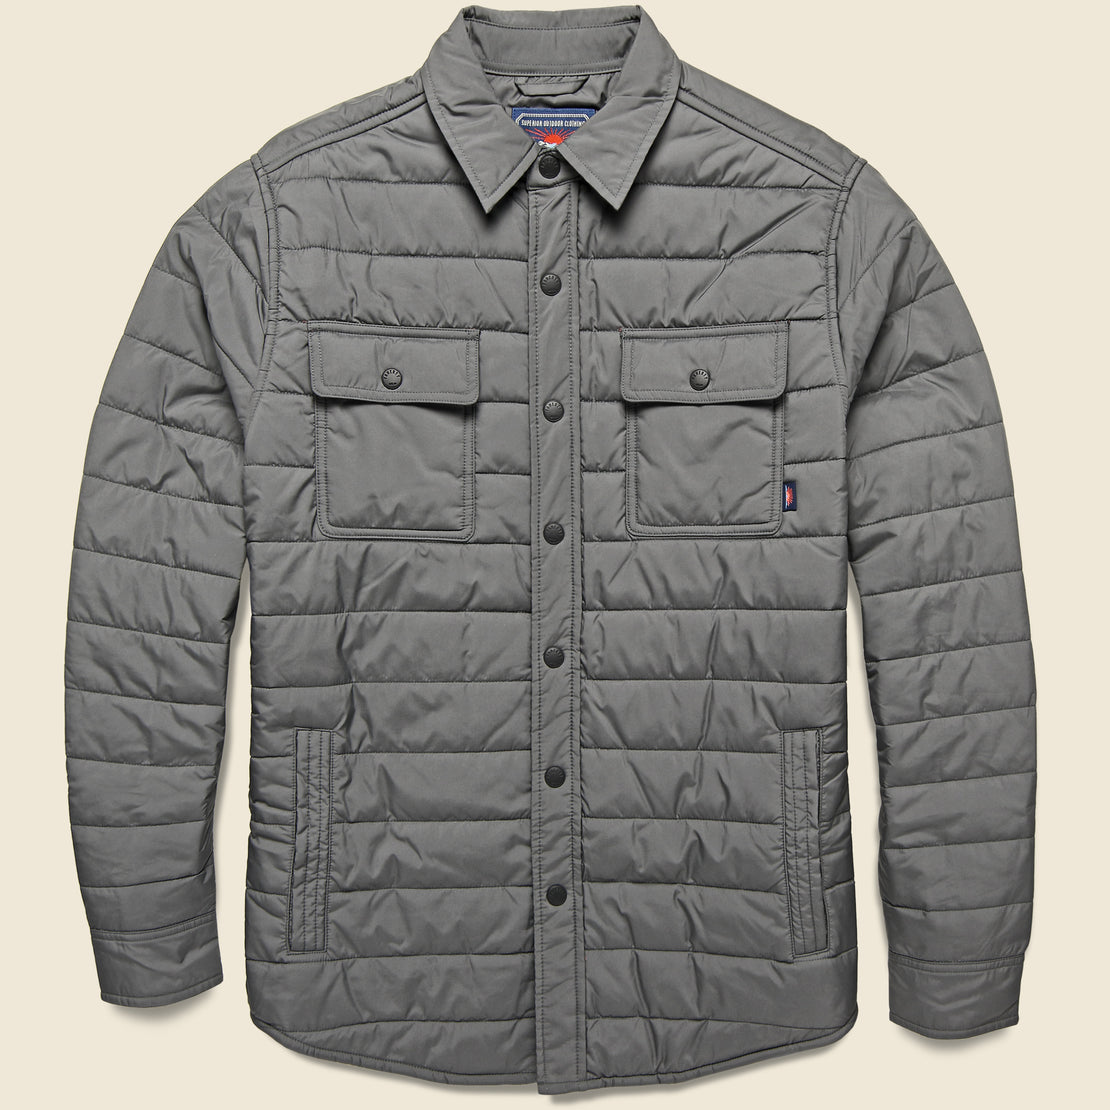 Faherty Atmosphere Packable Jacket - Ash